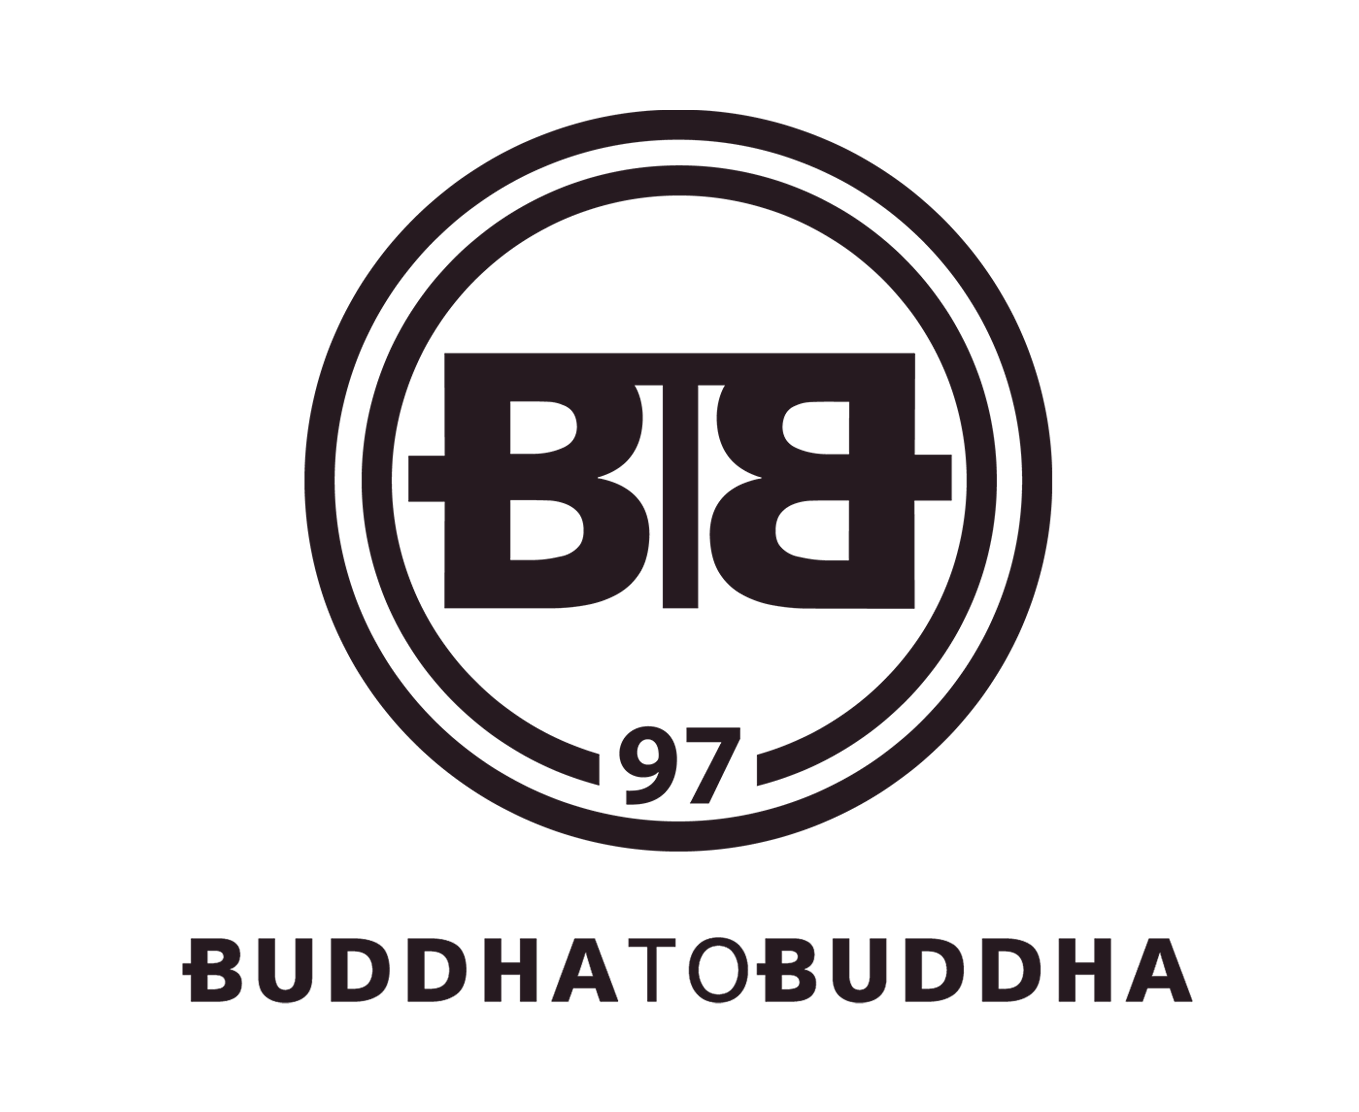 Budha 2 Budha Black Friday aanbieding 2020